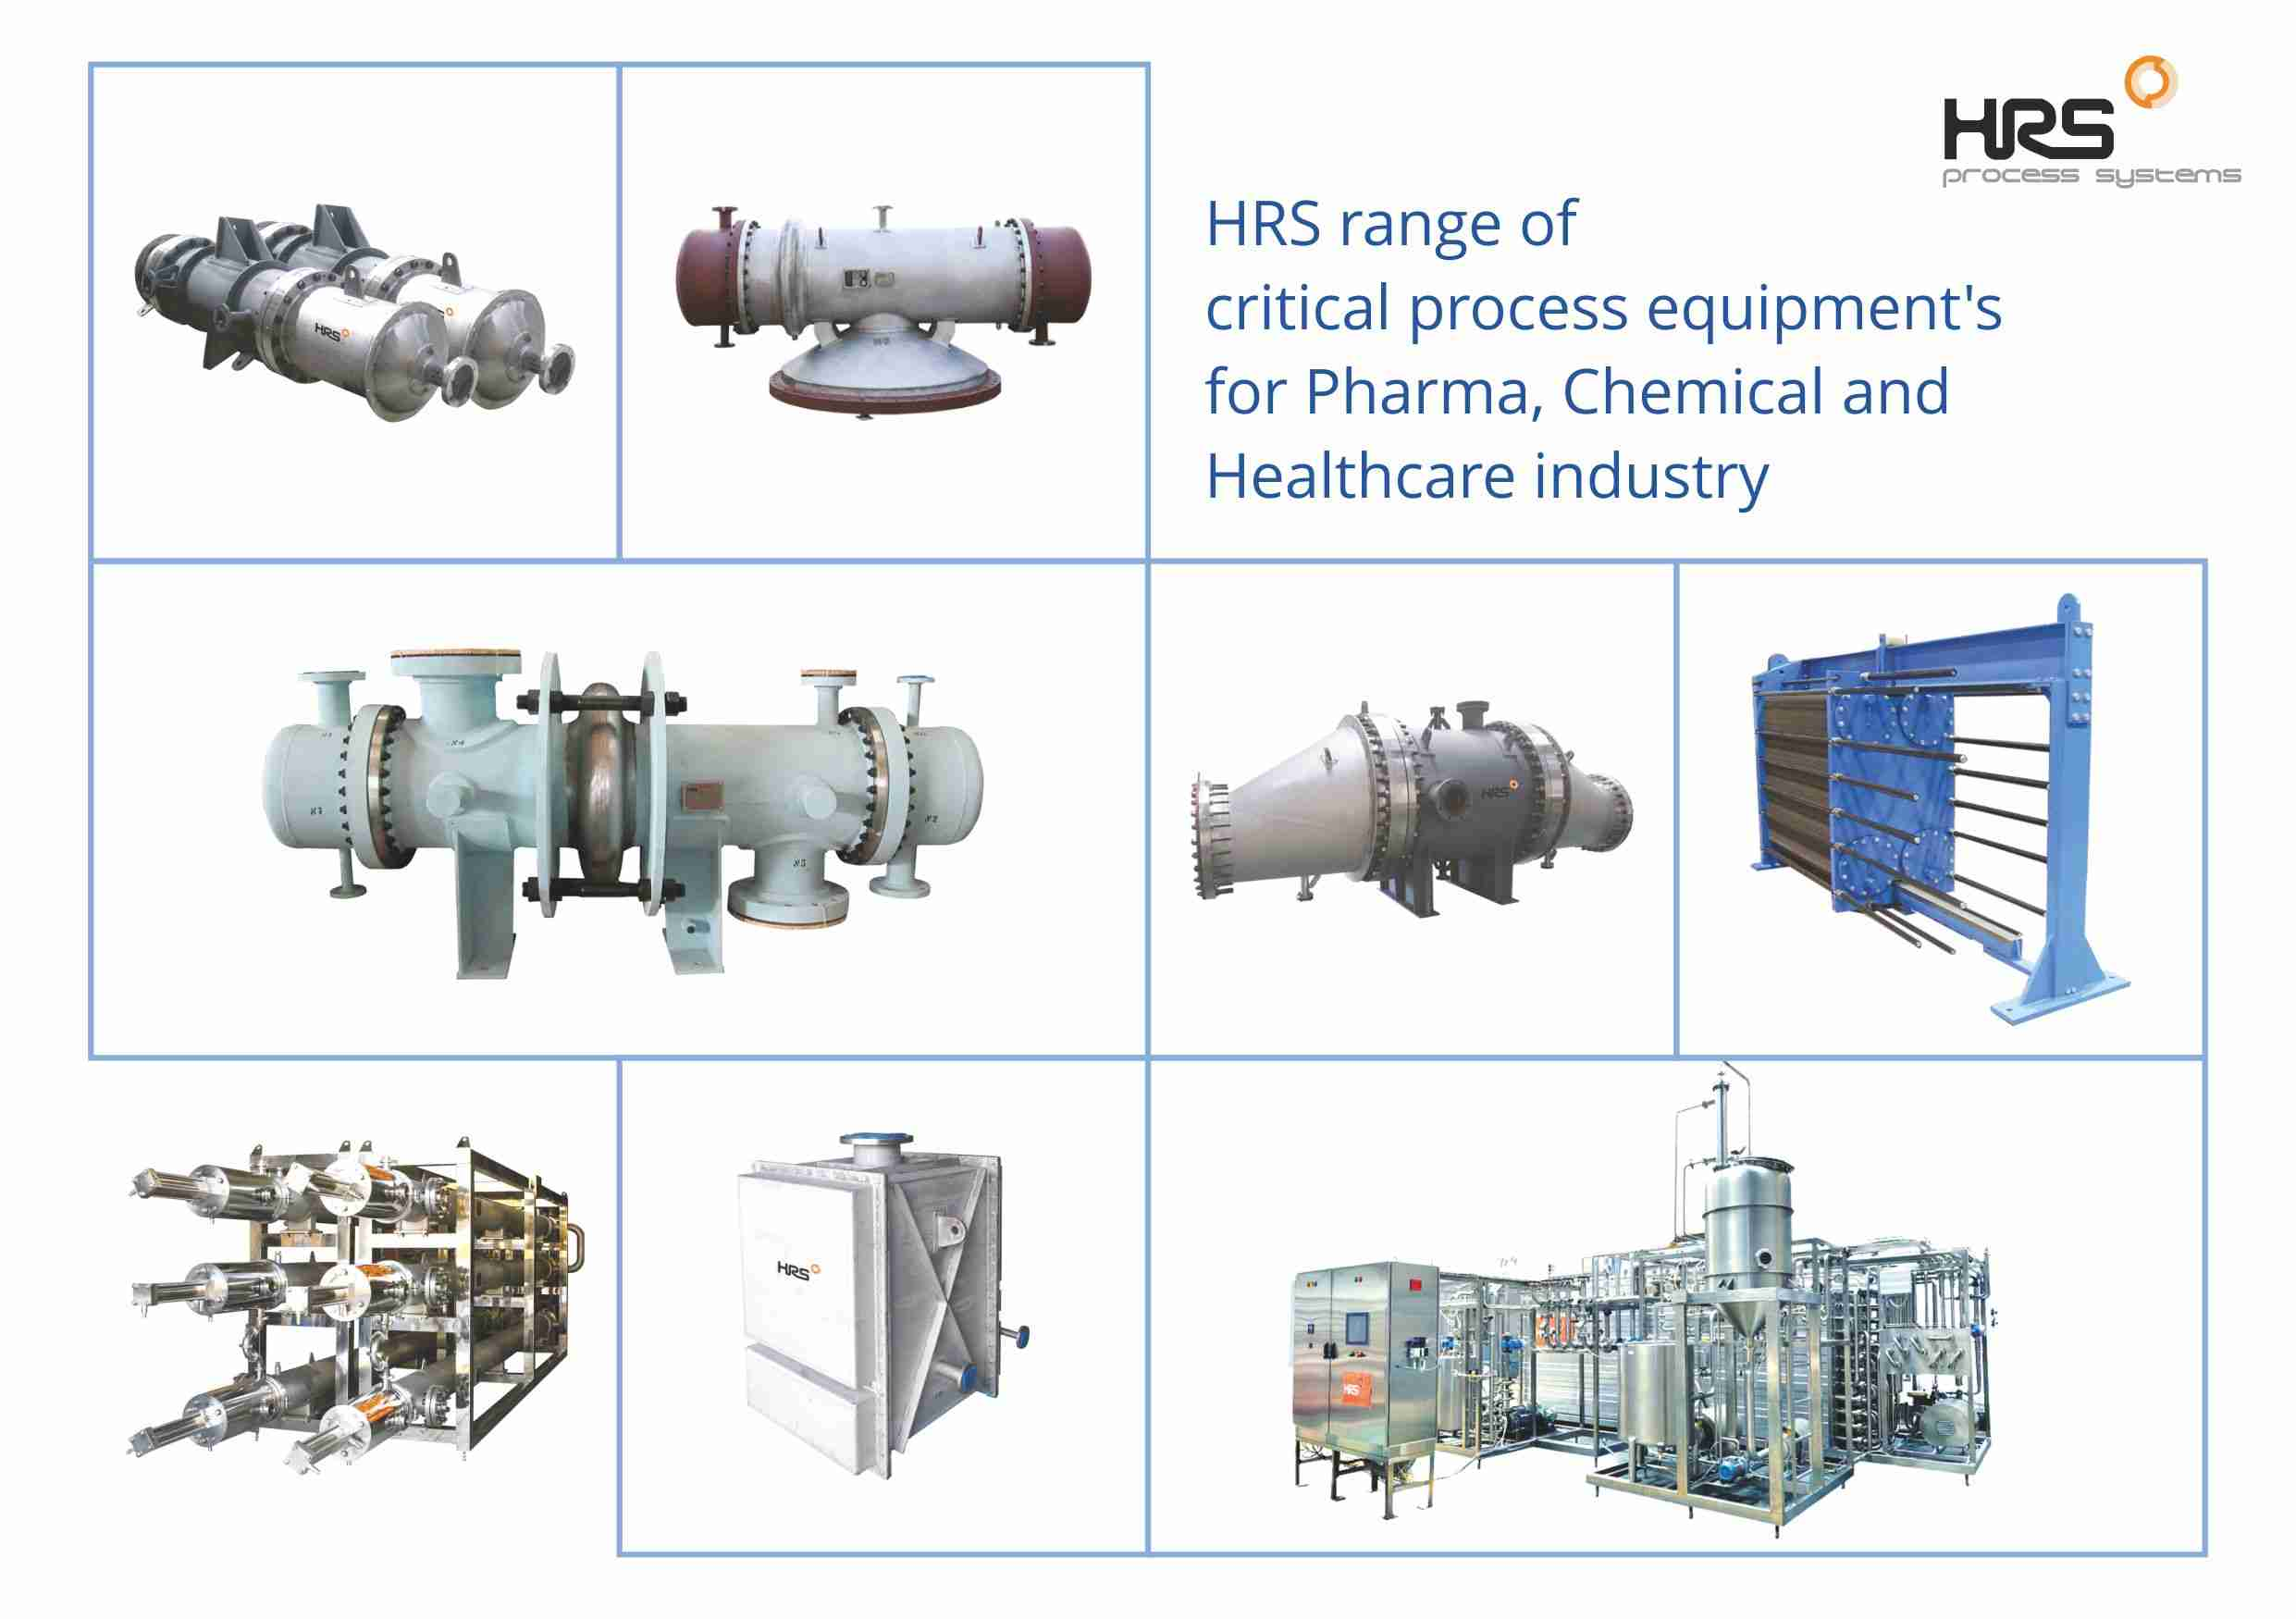 HRS Efficient Thermal Processing